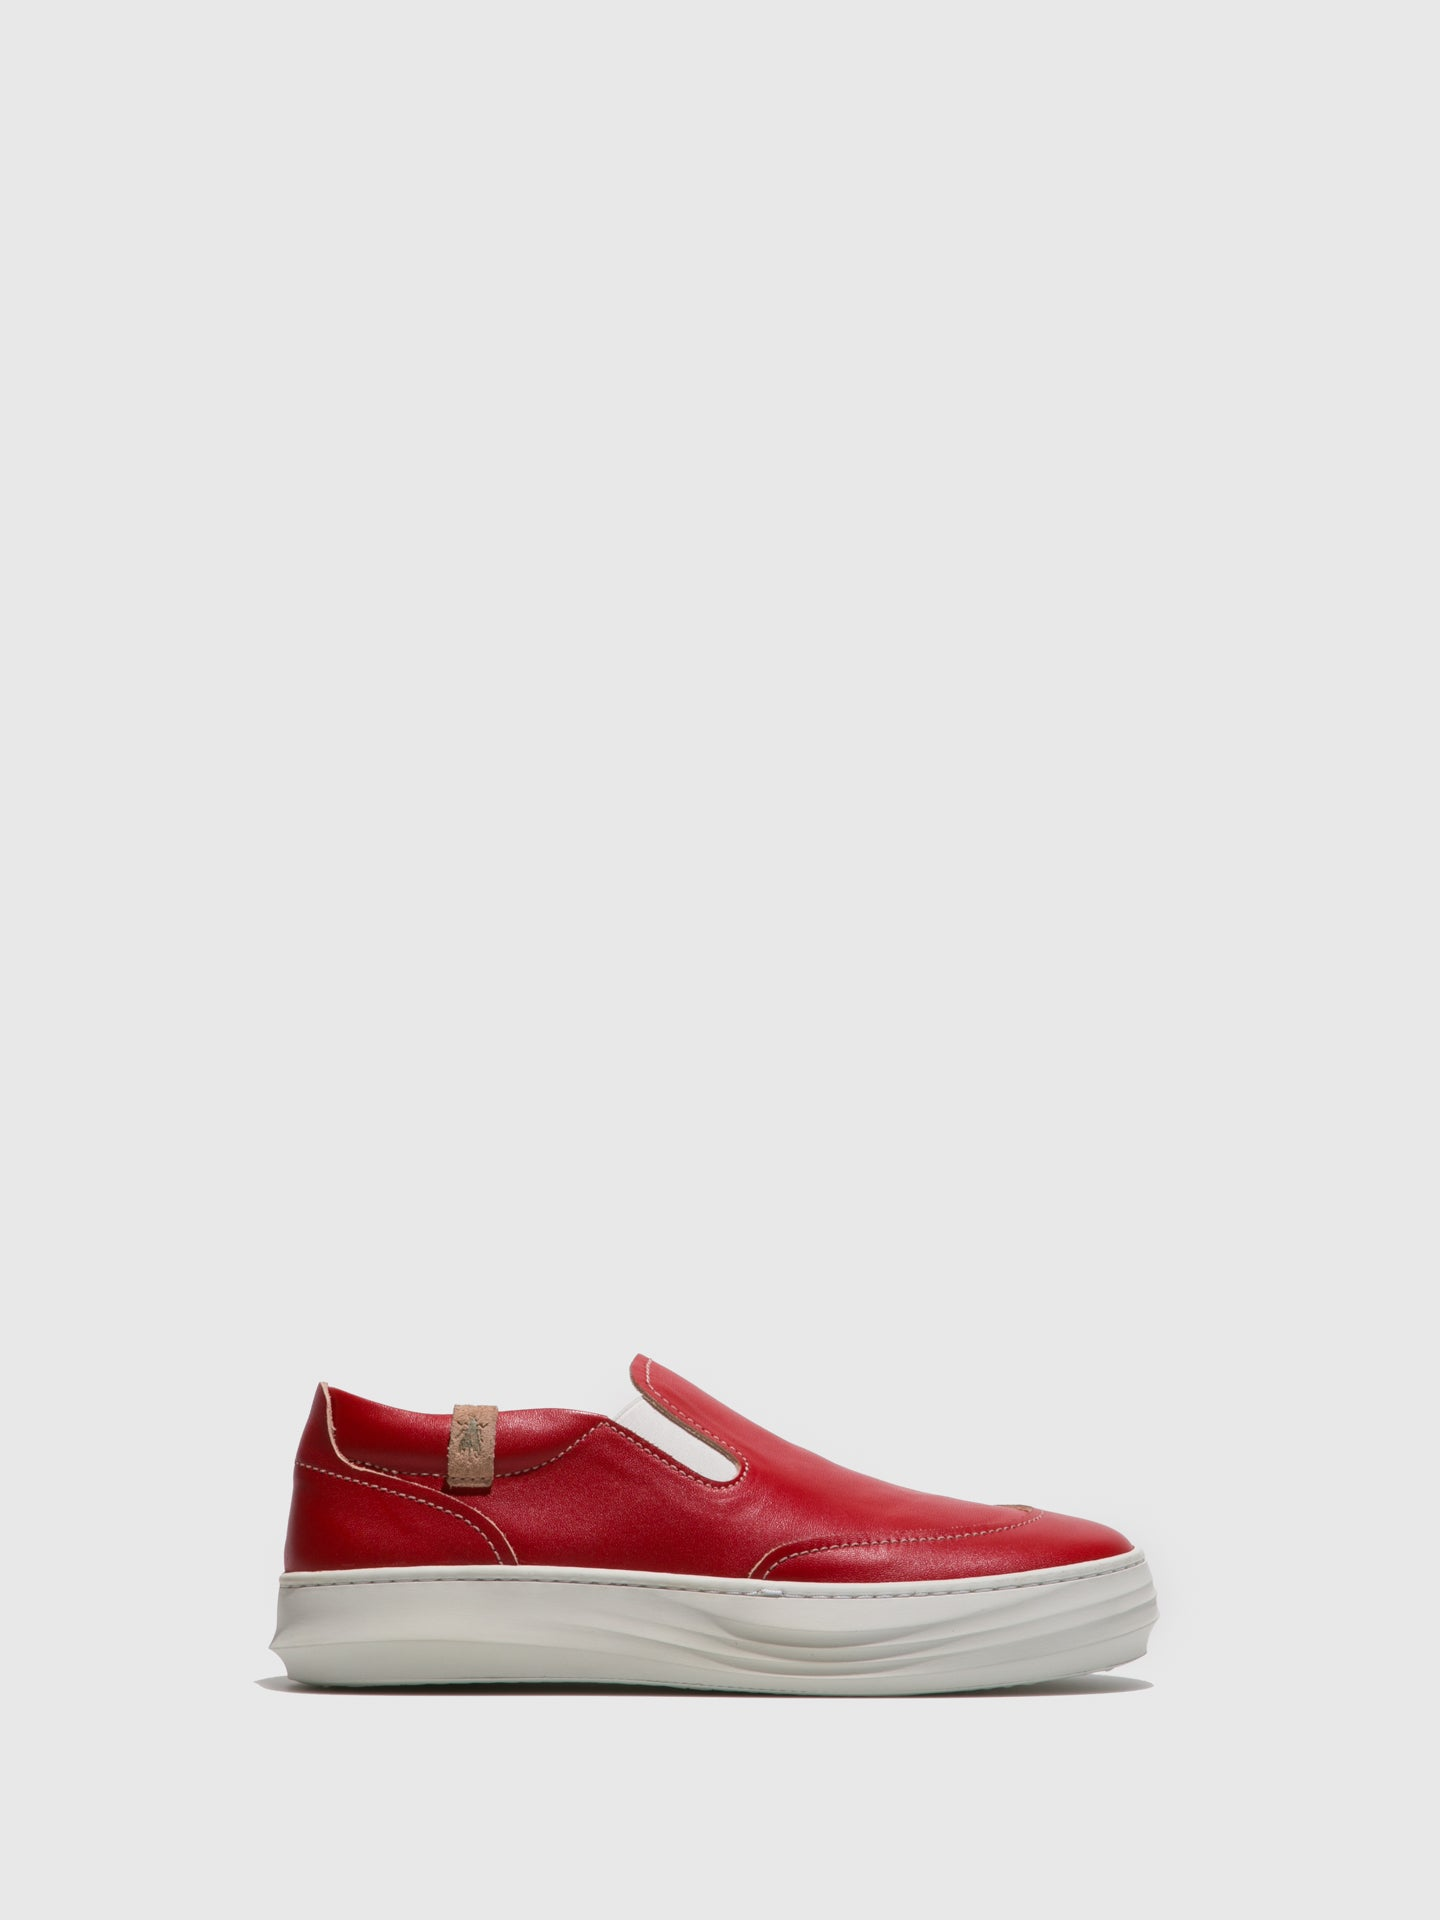 Fly London Red Slip-on Trainers